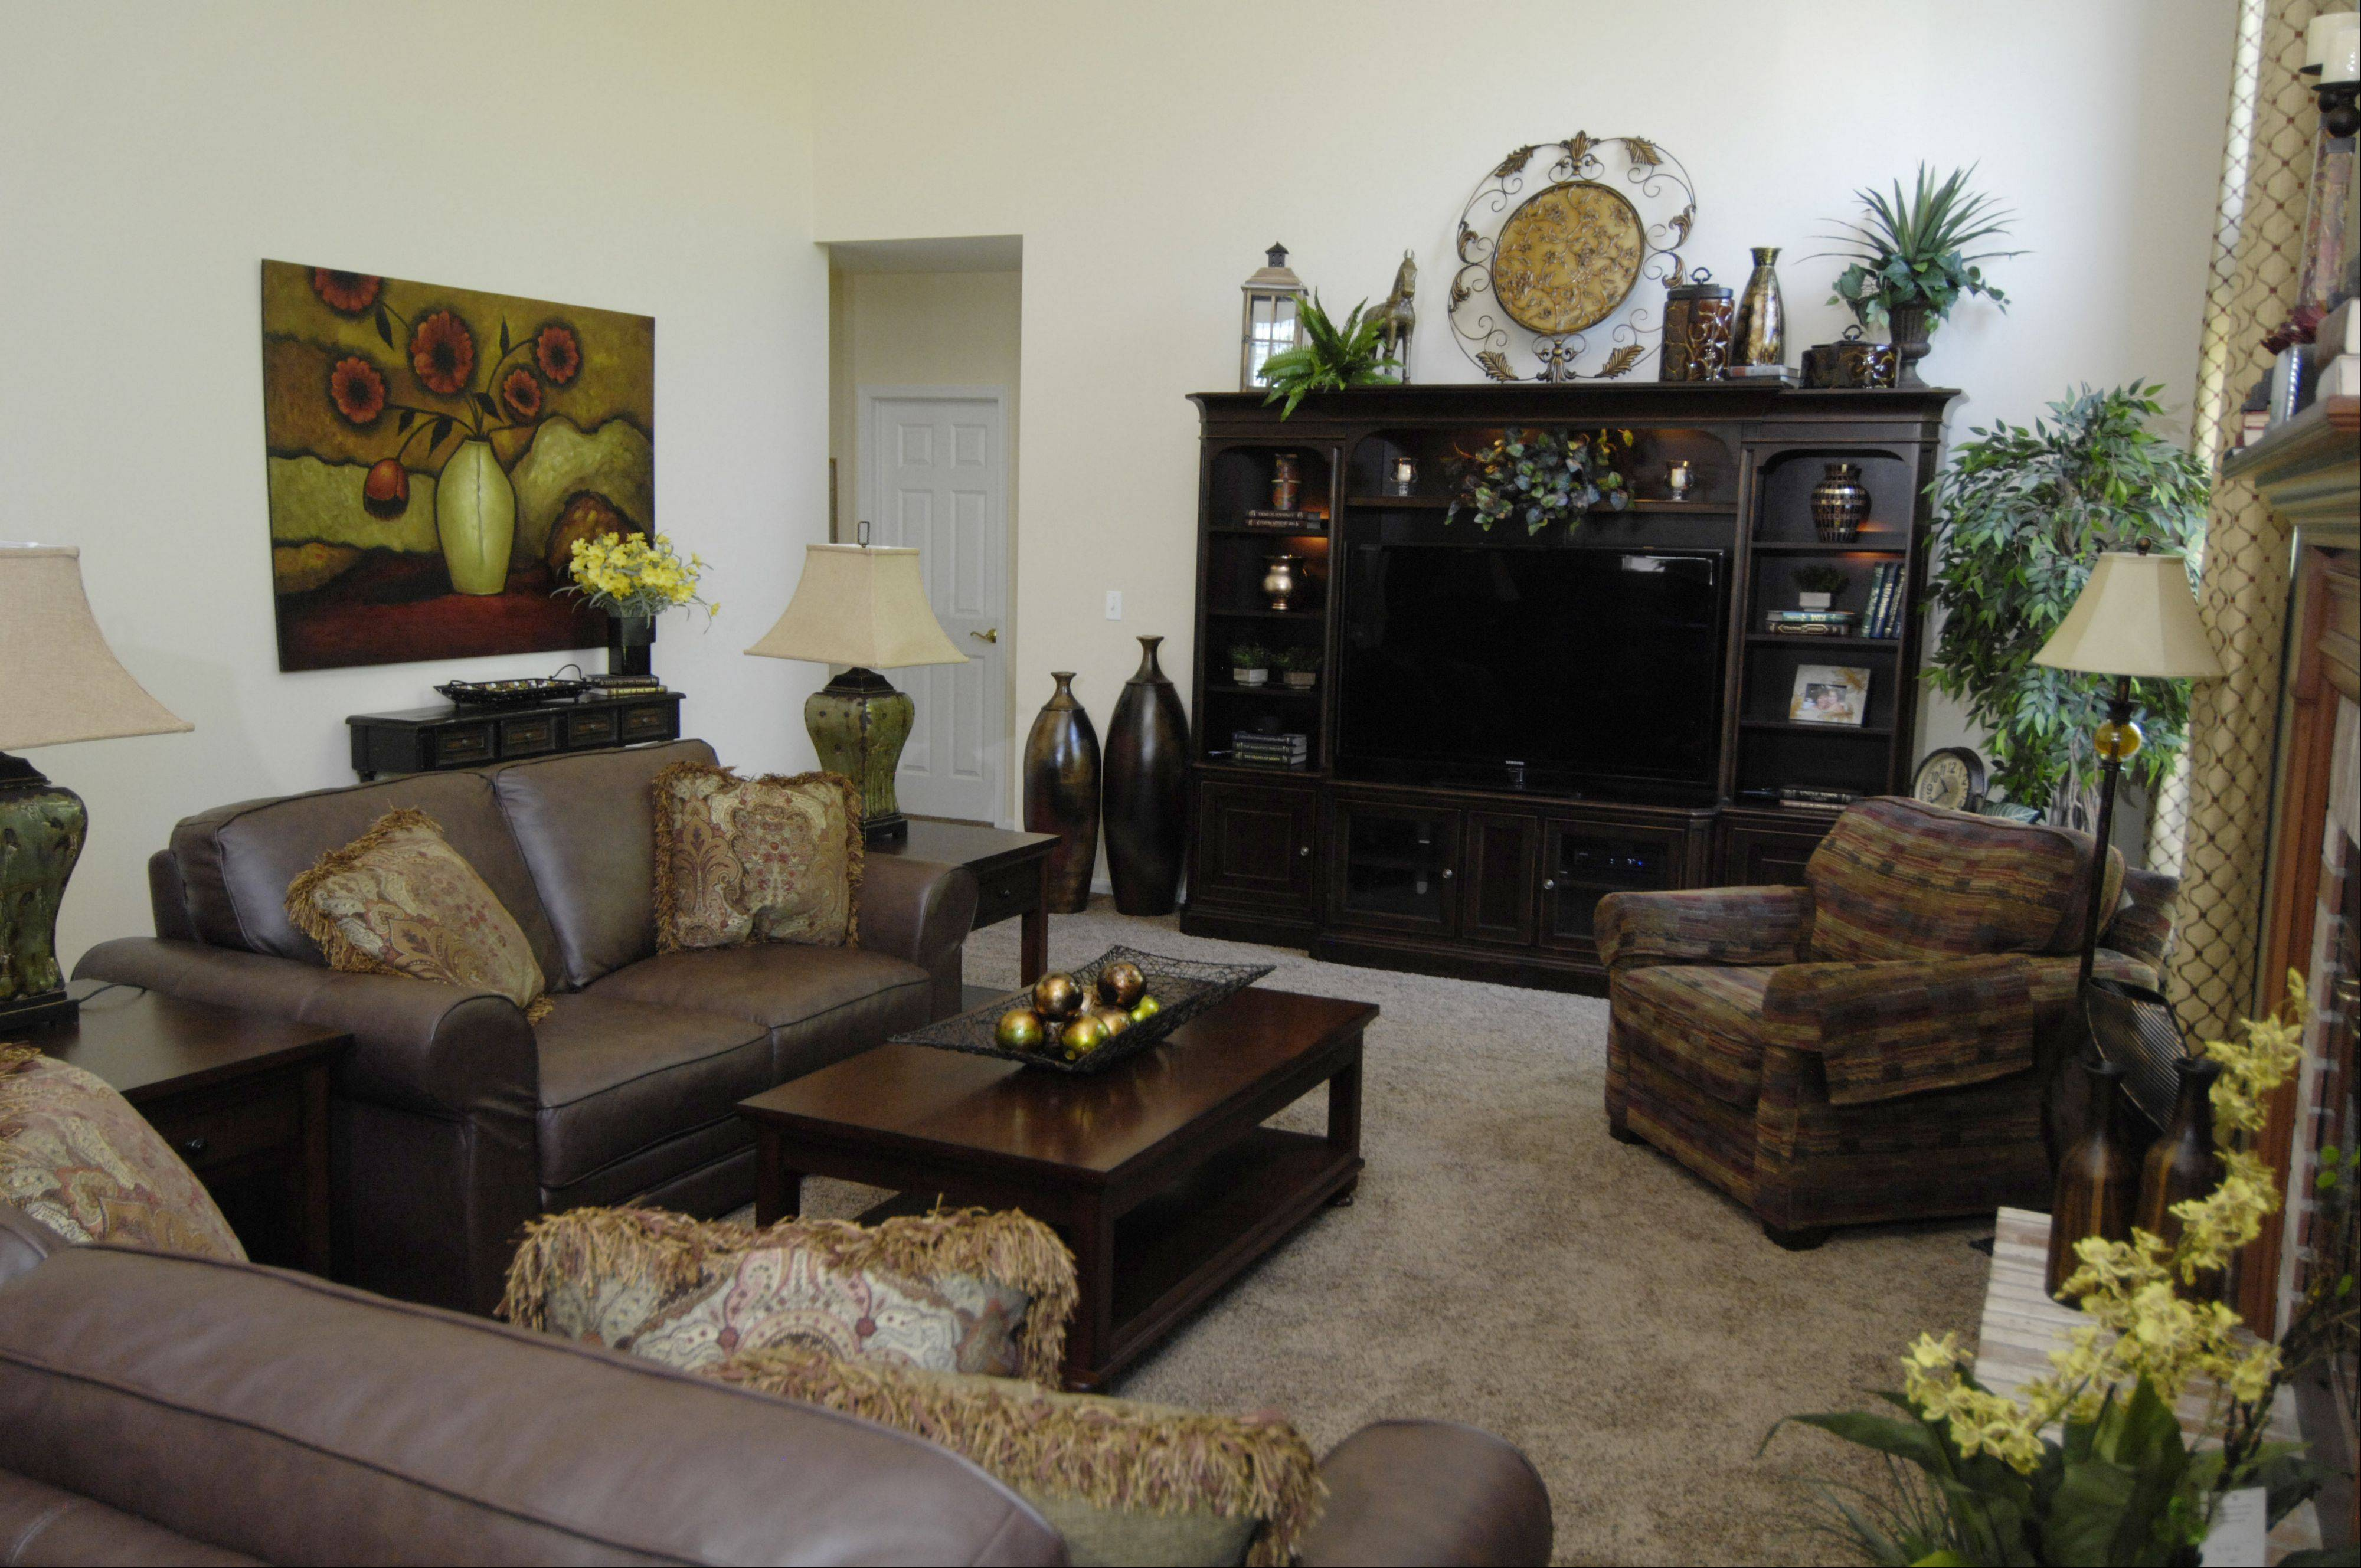 The entertainment center and chair are new, the homeowners had the leather couches.